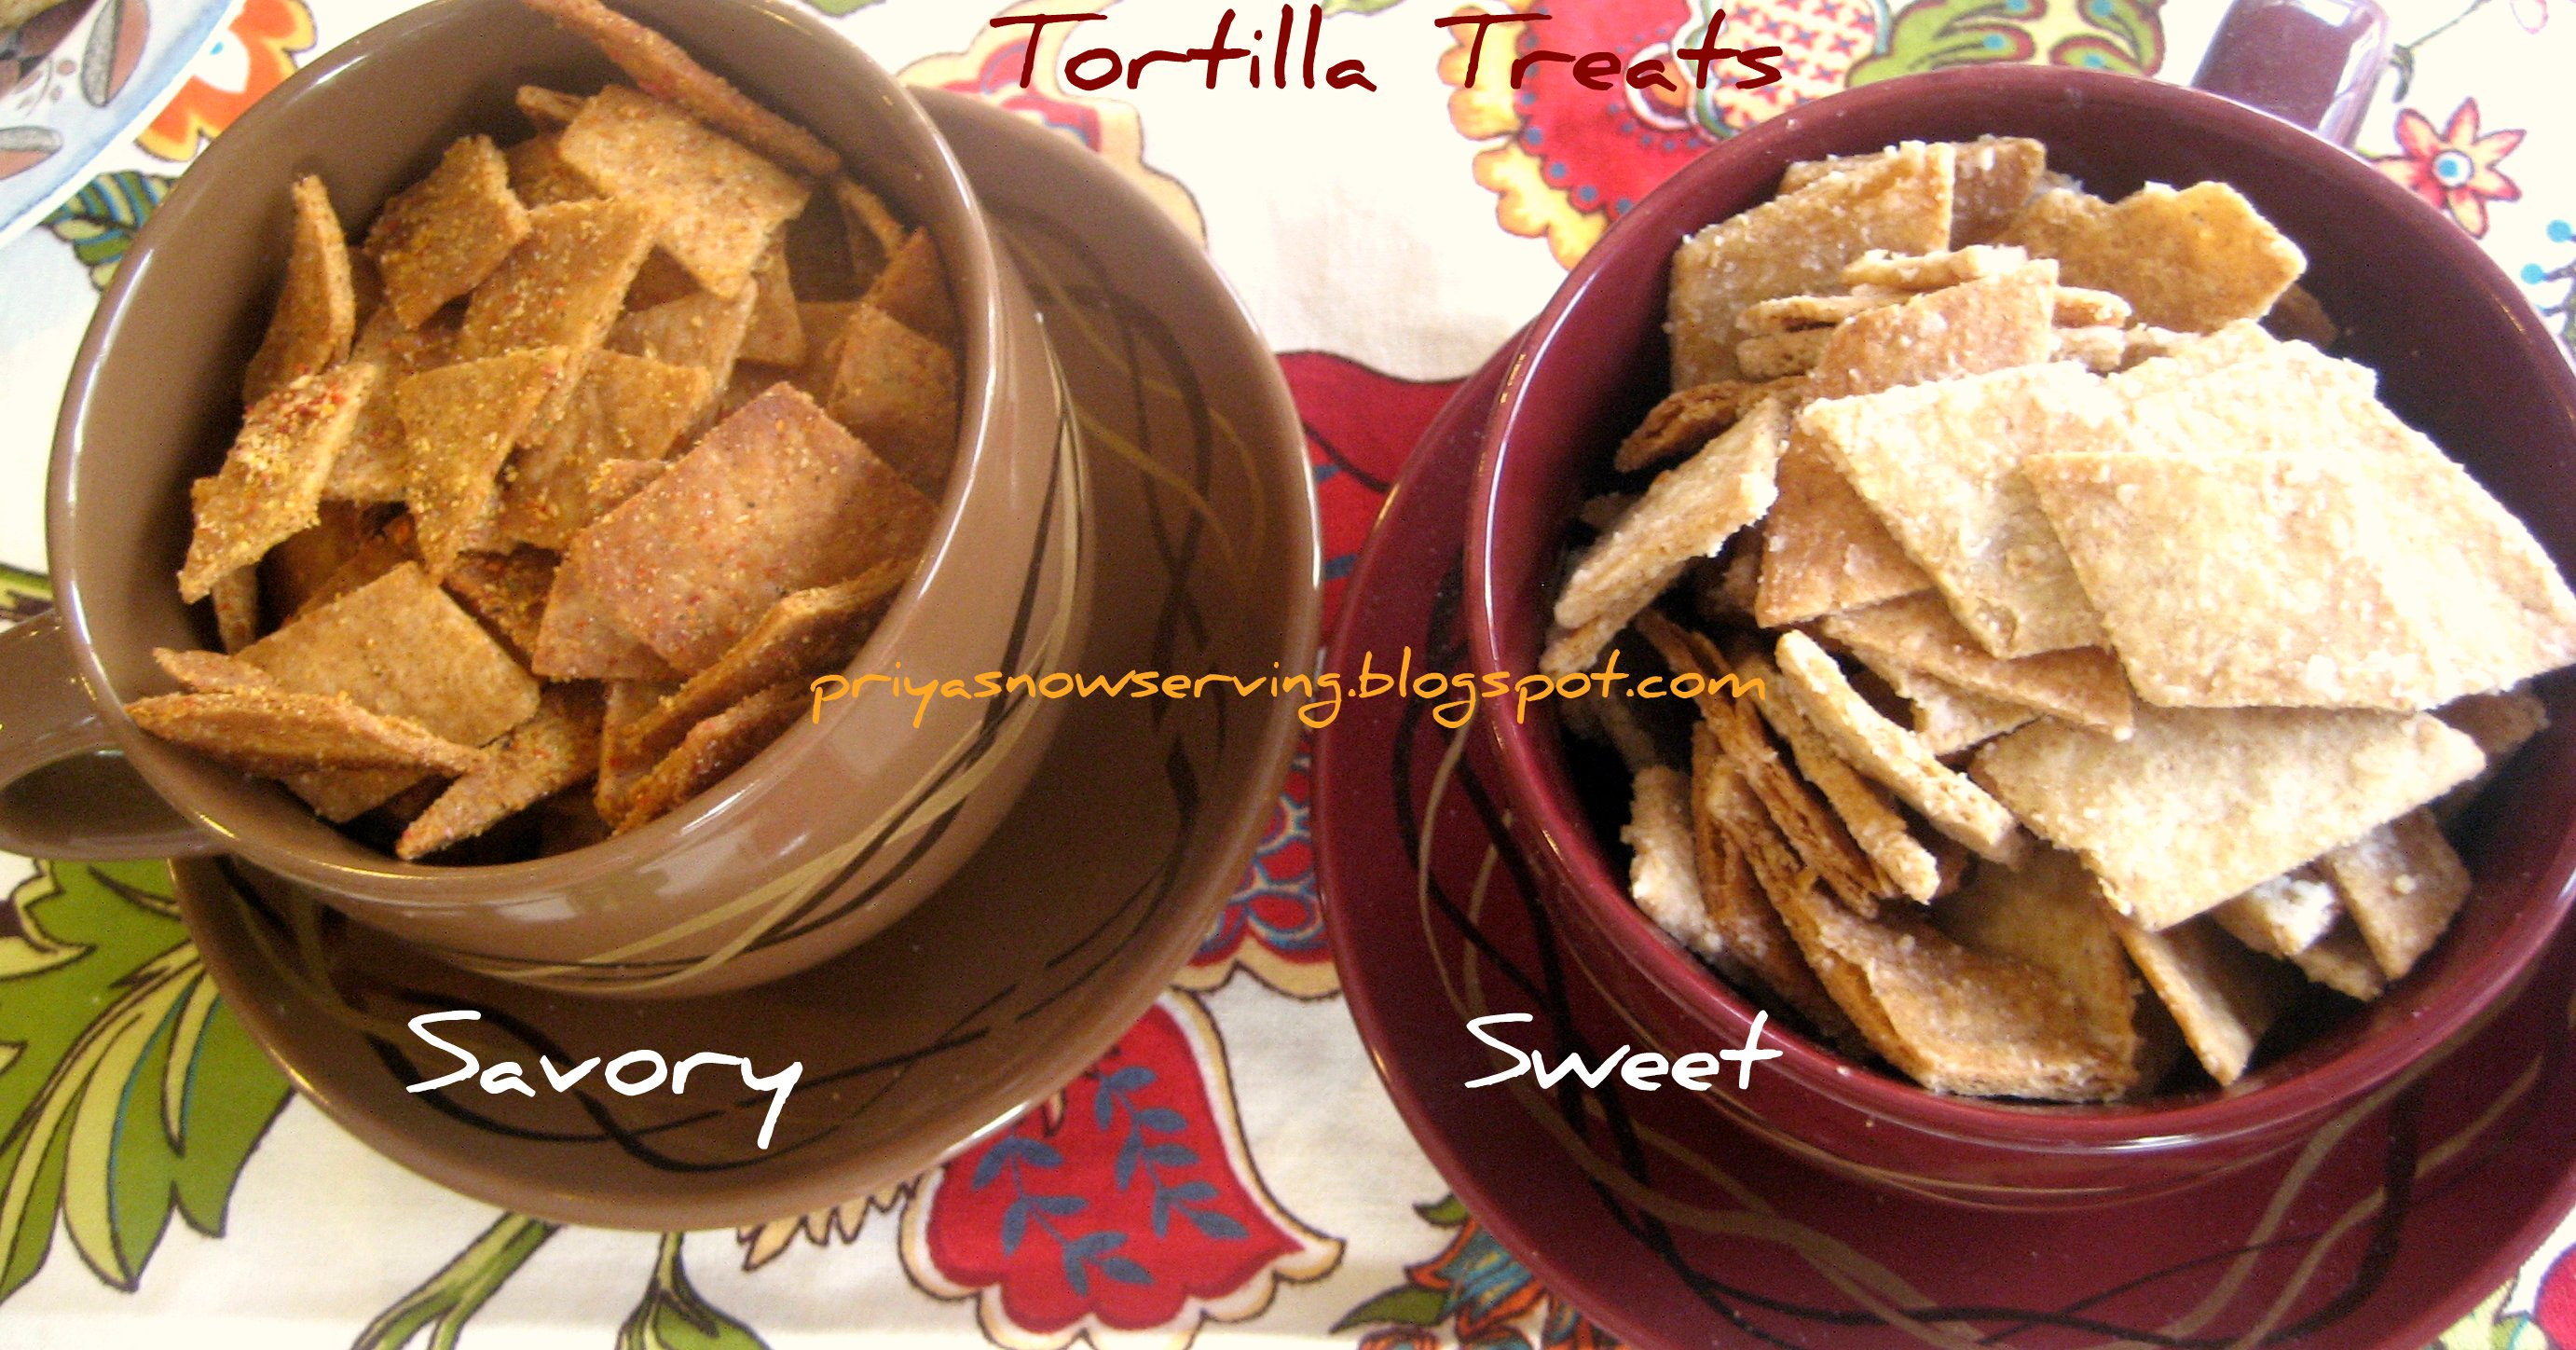 Tortilla Treats